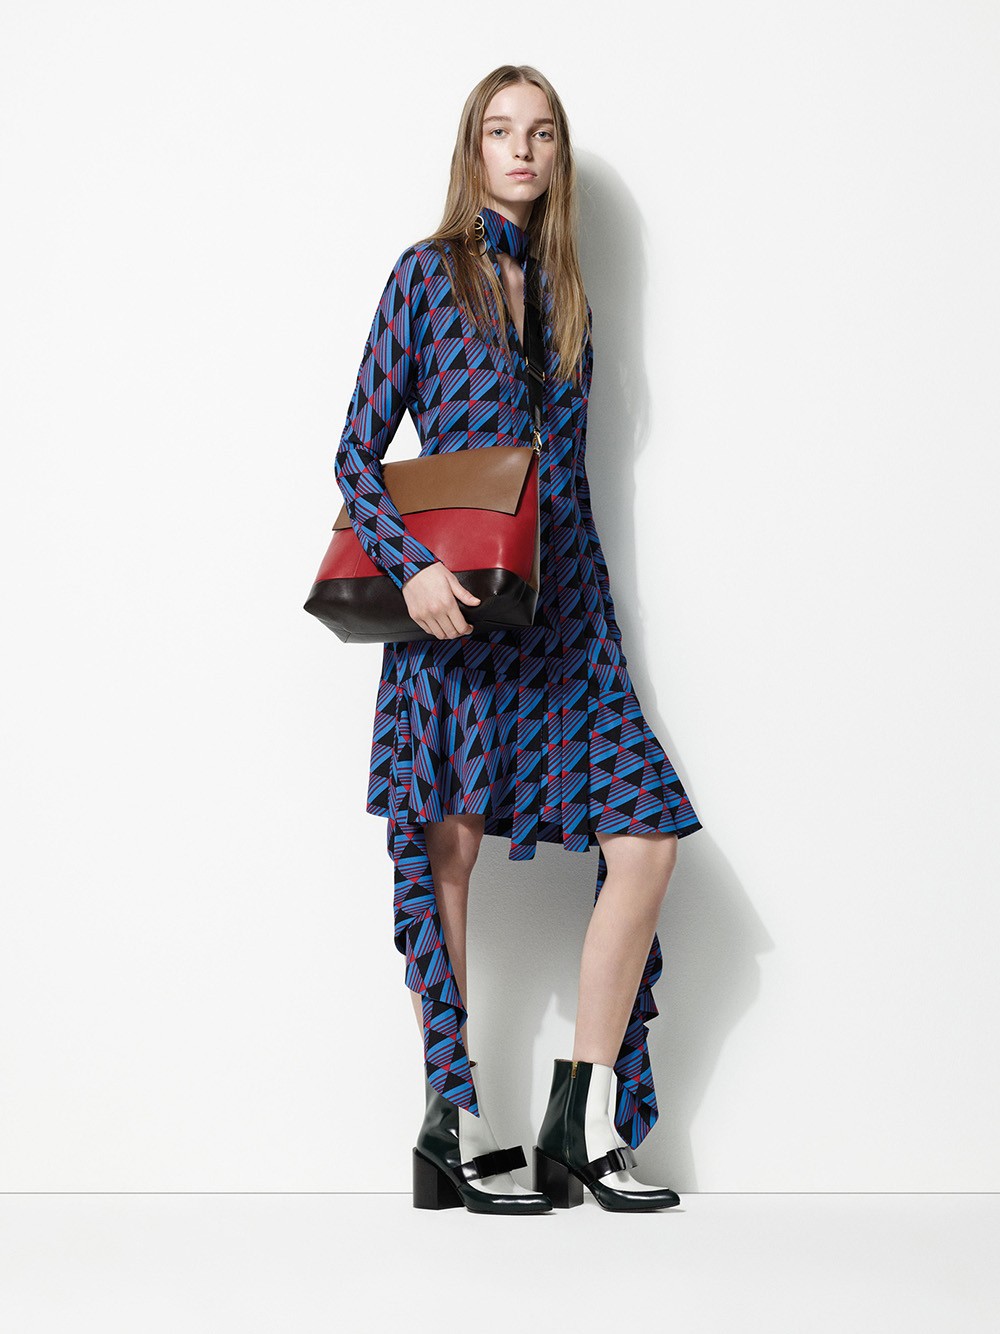 marni_pre_fall_2016_lookbook_21_jpg_8719_north_1382x_black